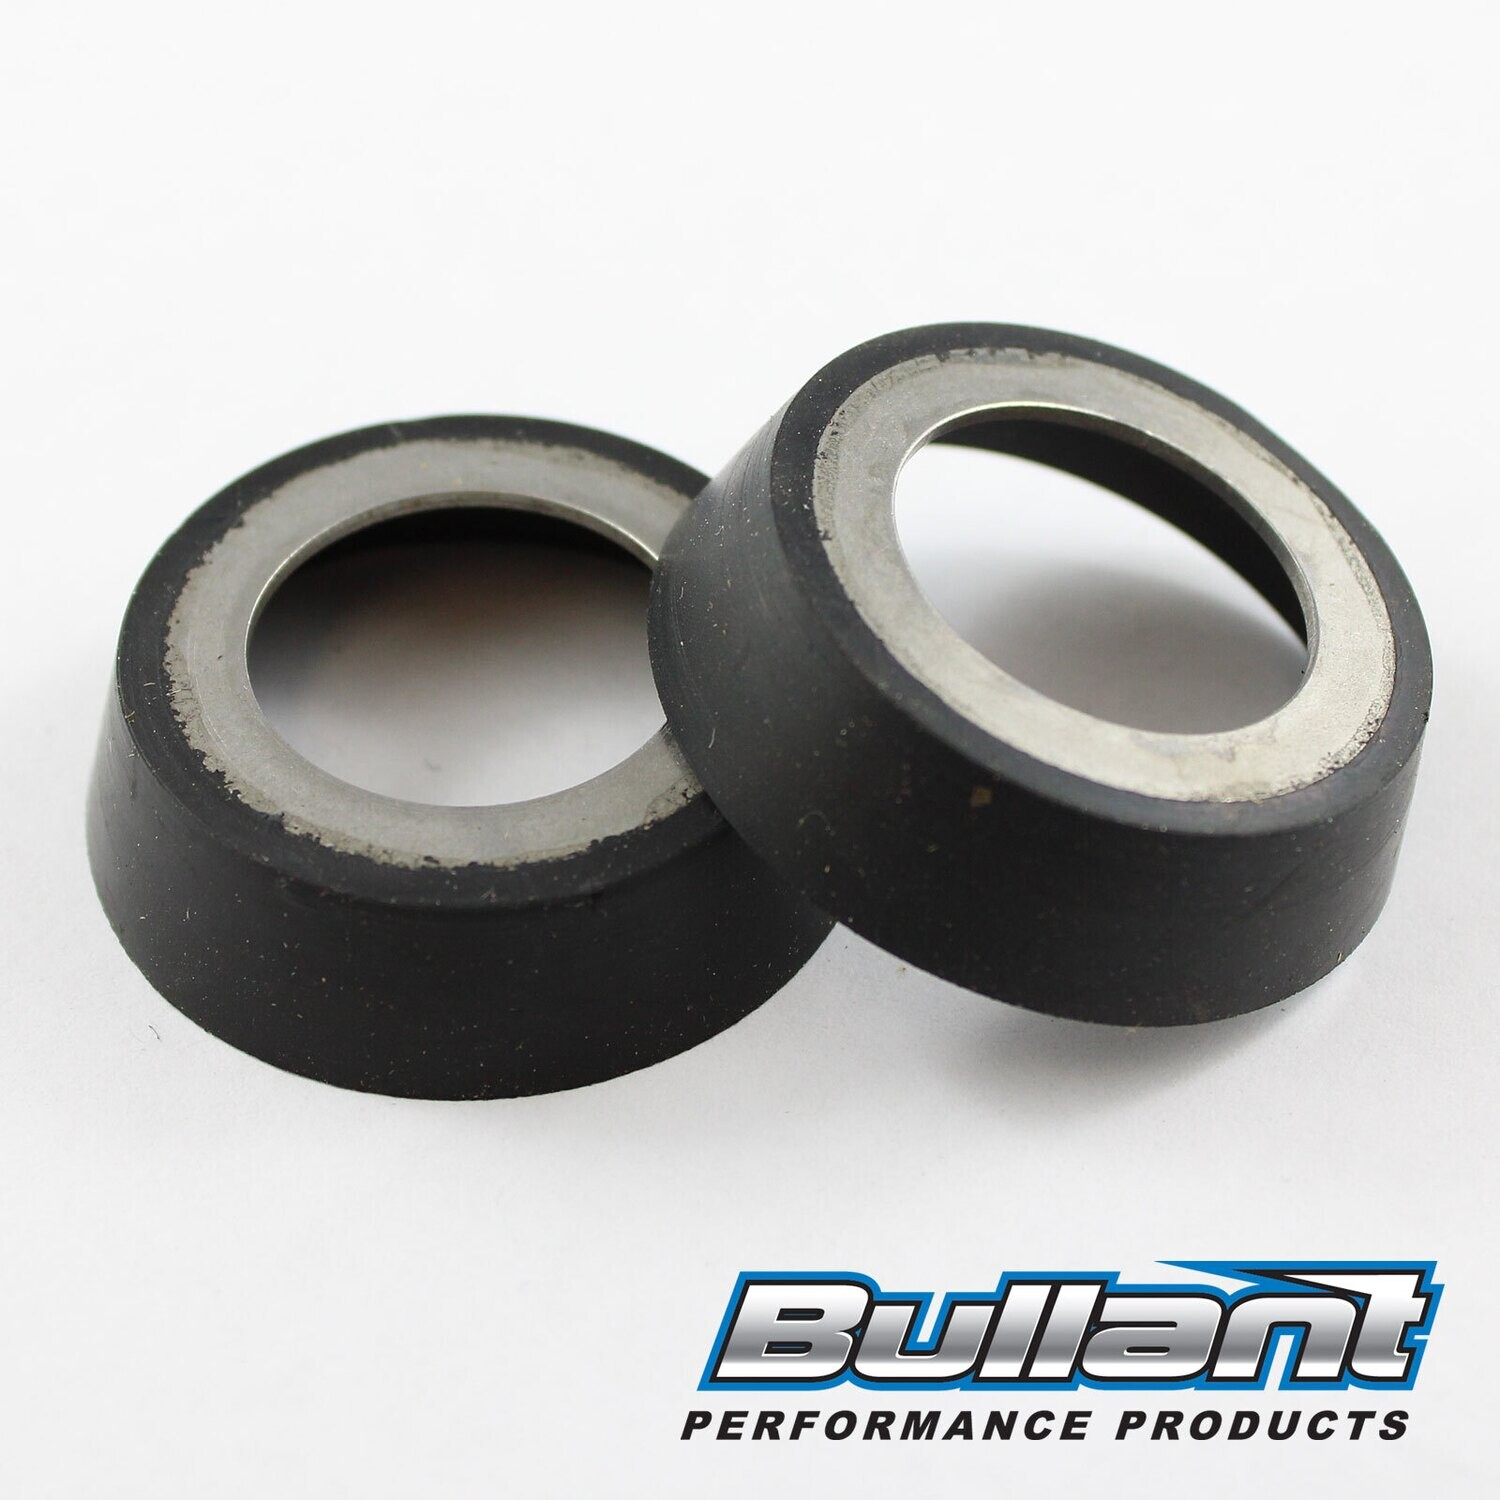 Rod End Rubber Seals for 3/4